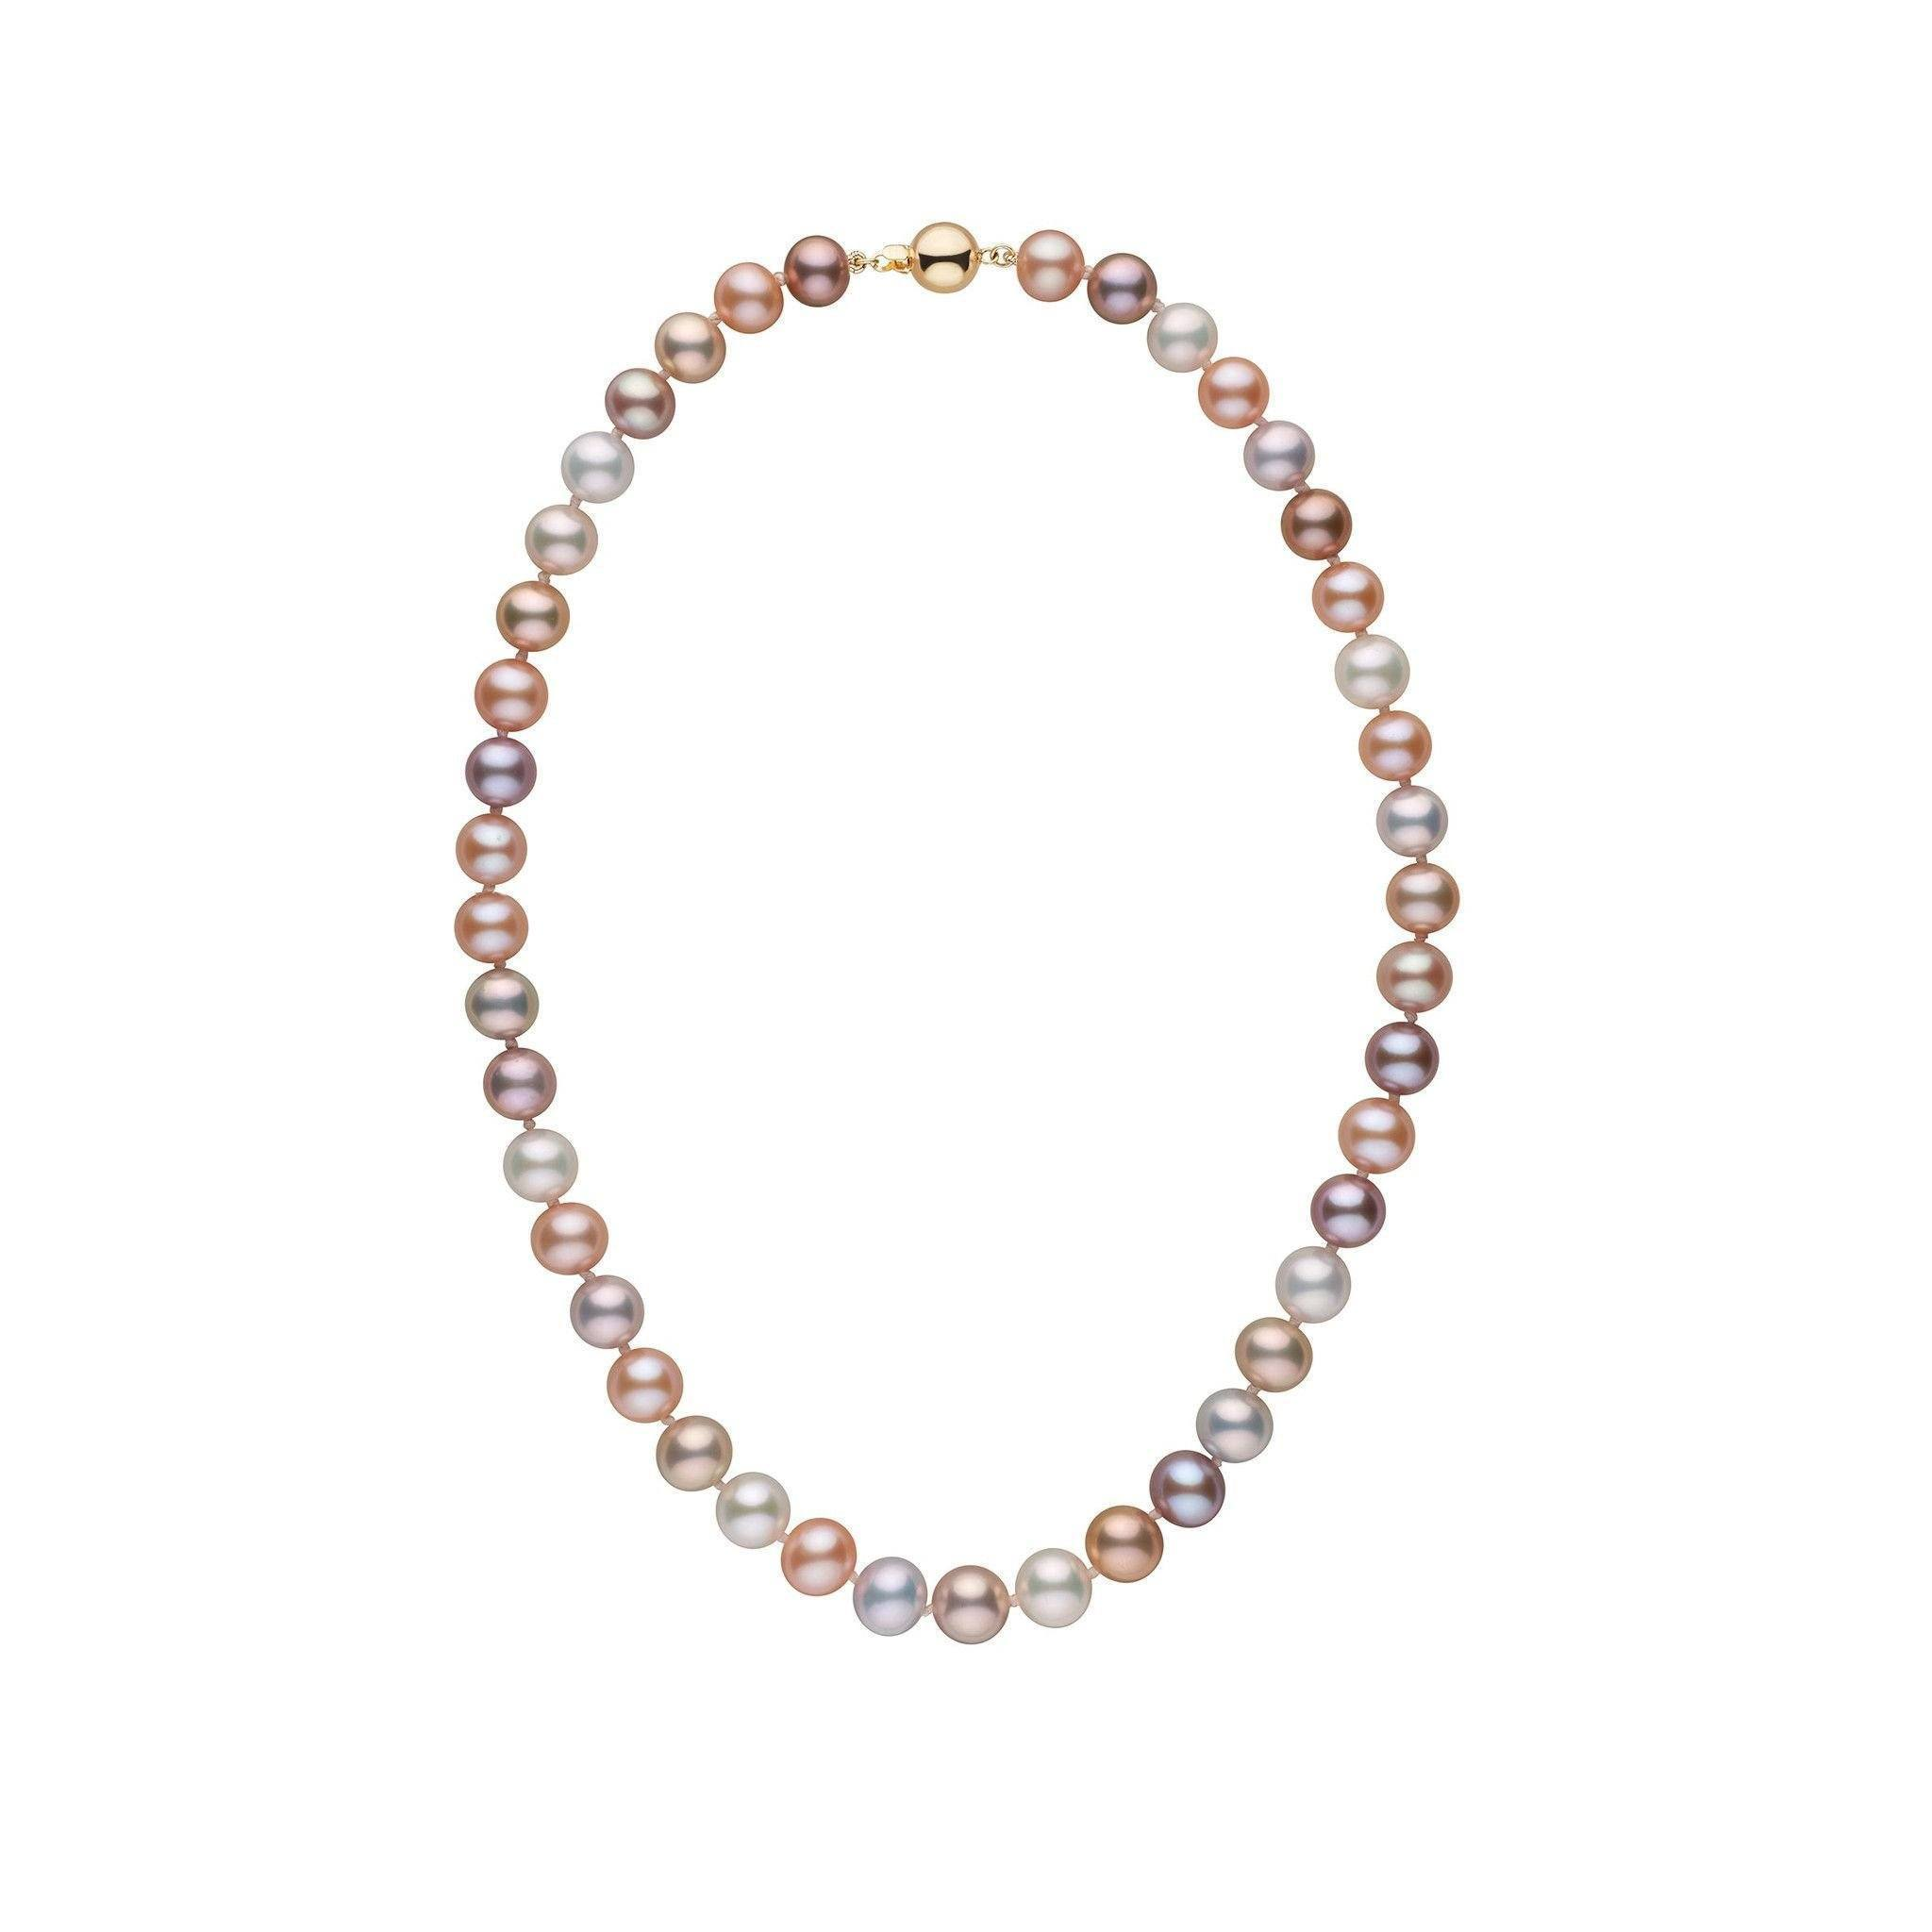 8.5-9.0 mm 16 Inch AAA Multicolor Freshwater Pearl Necklace